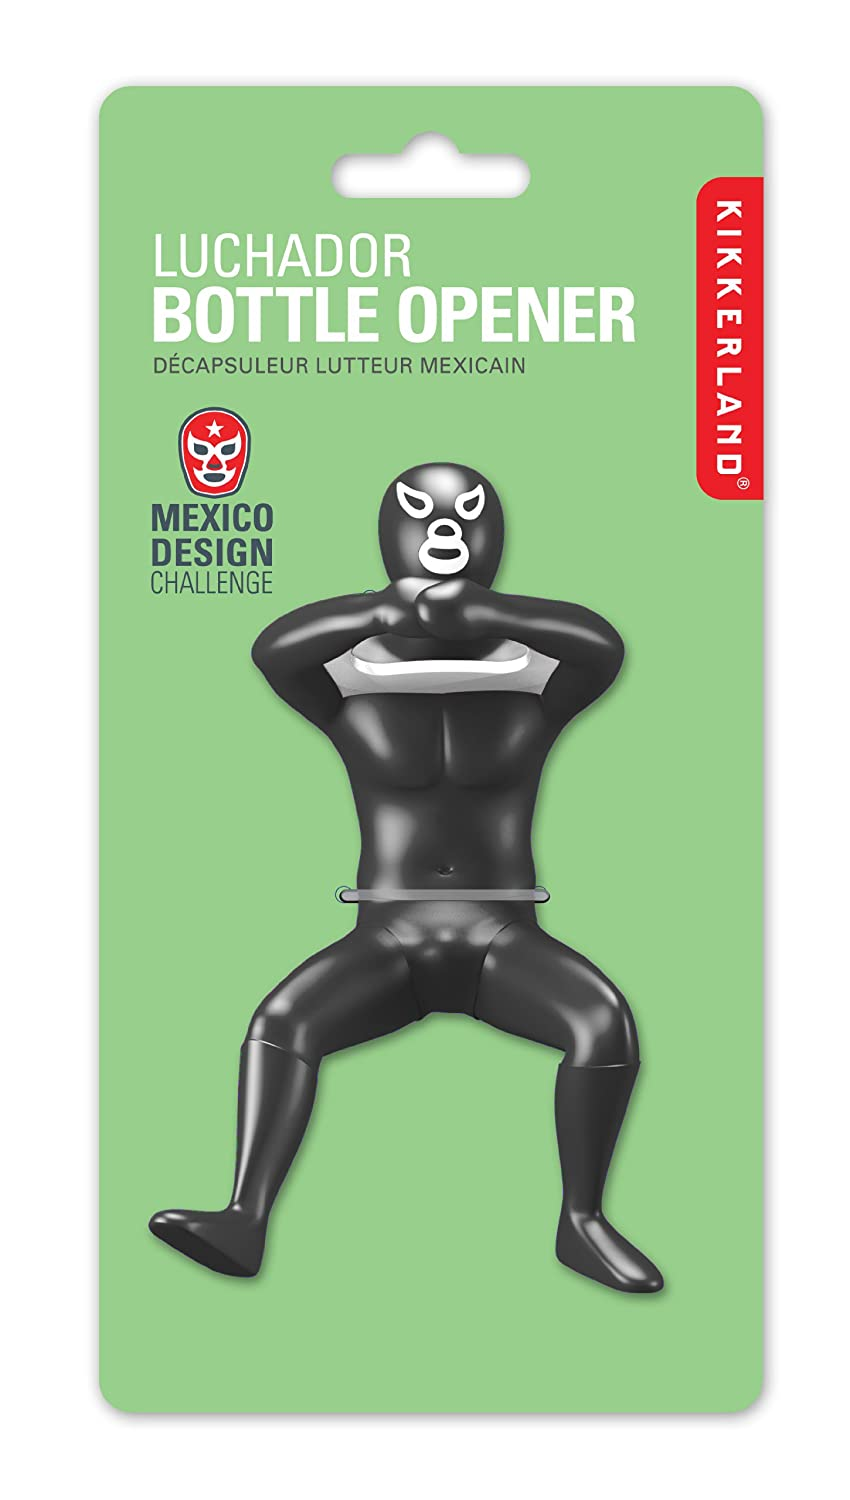 Kikkerland luchador bottle opener assorted colors and styles new free shippi ebay - Wrestler bottle opener ...